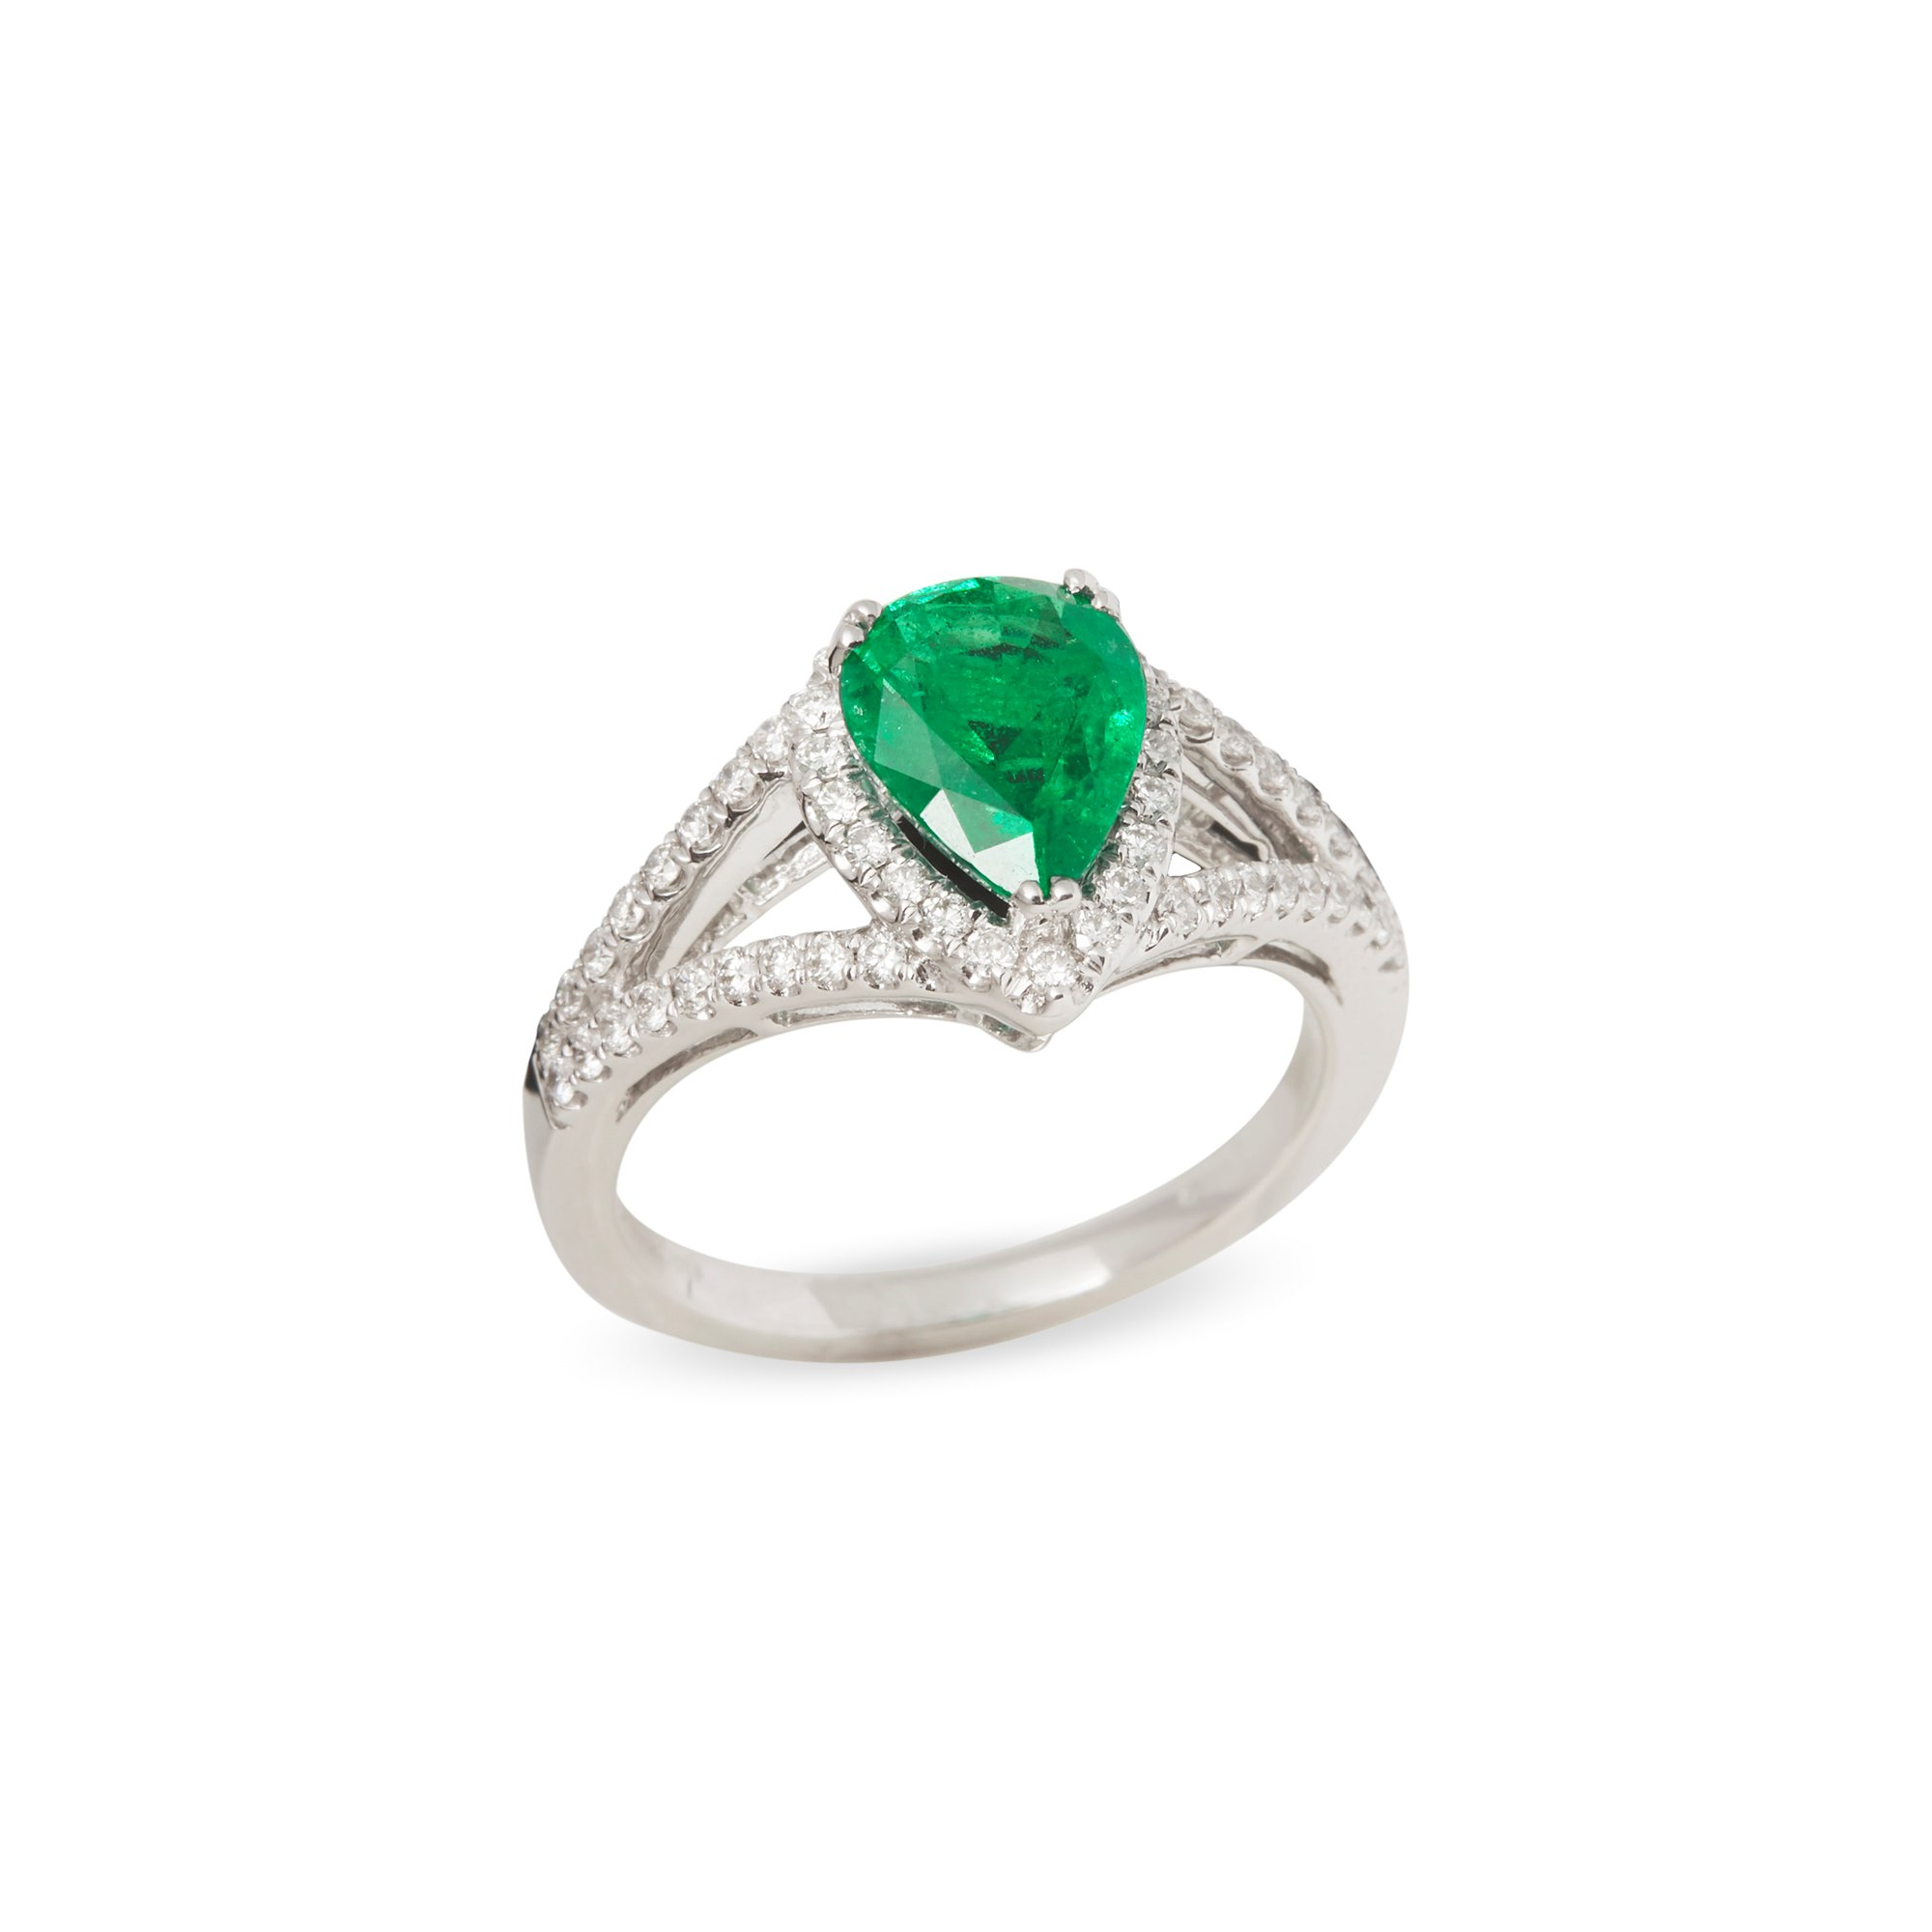 David Jerome Certified 1.57ct Untreated Columbian Pear Cut Emerald and Diamond Ring